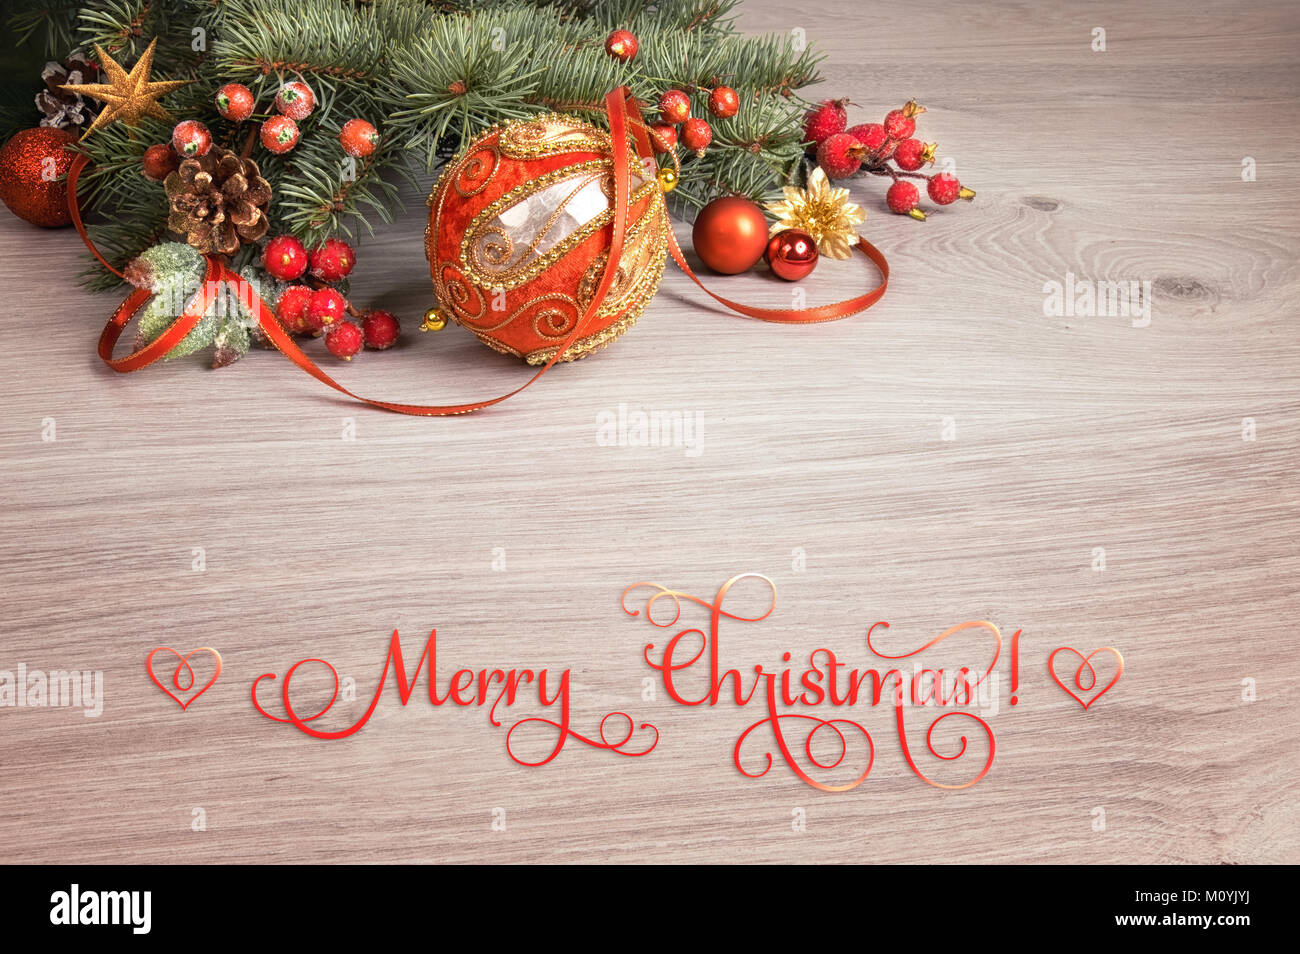 Wooden Background With Decorated Christmas Tree Twigs In One Corner